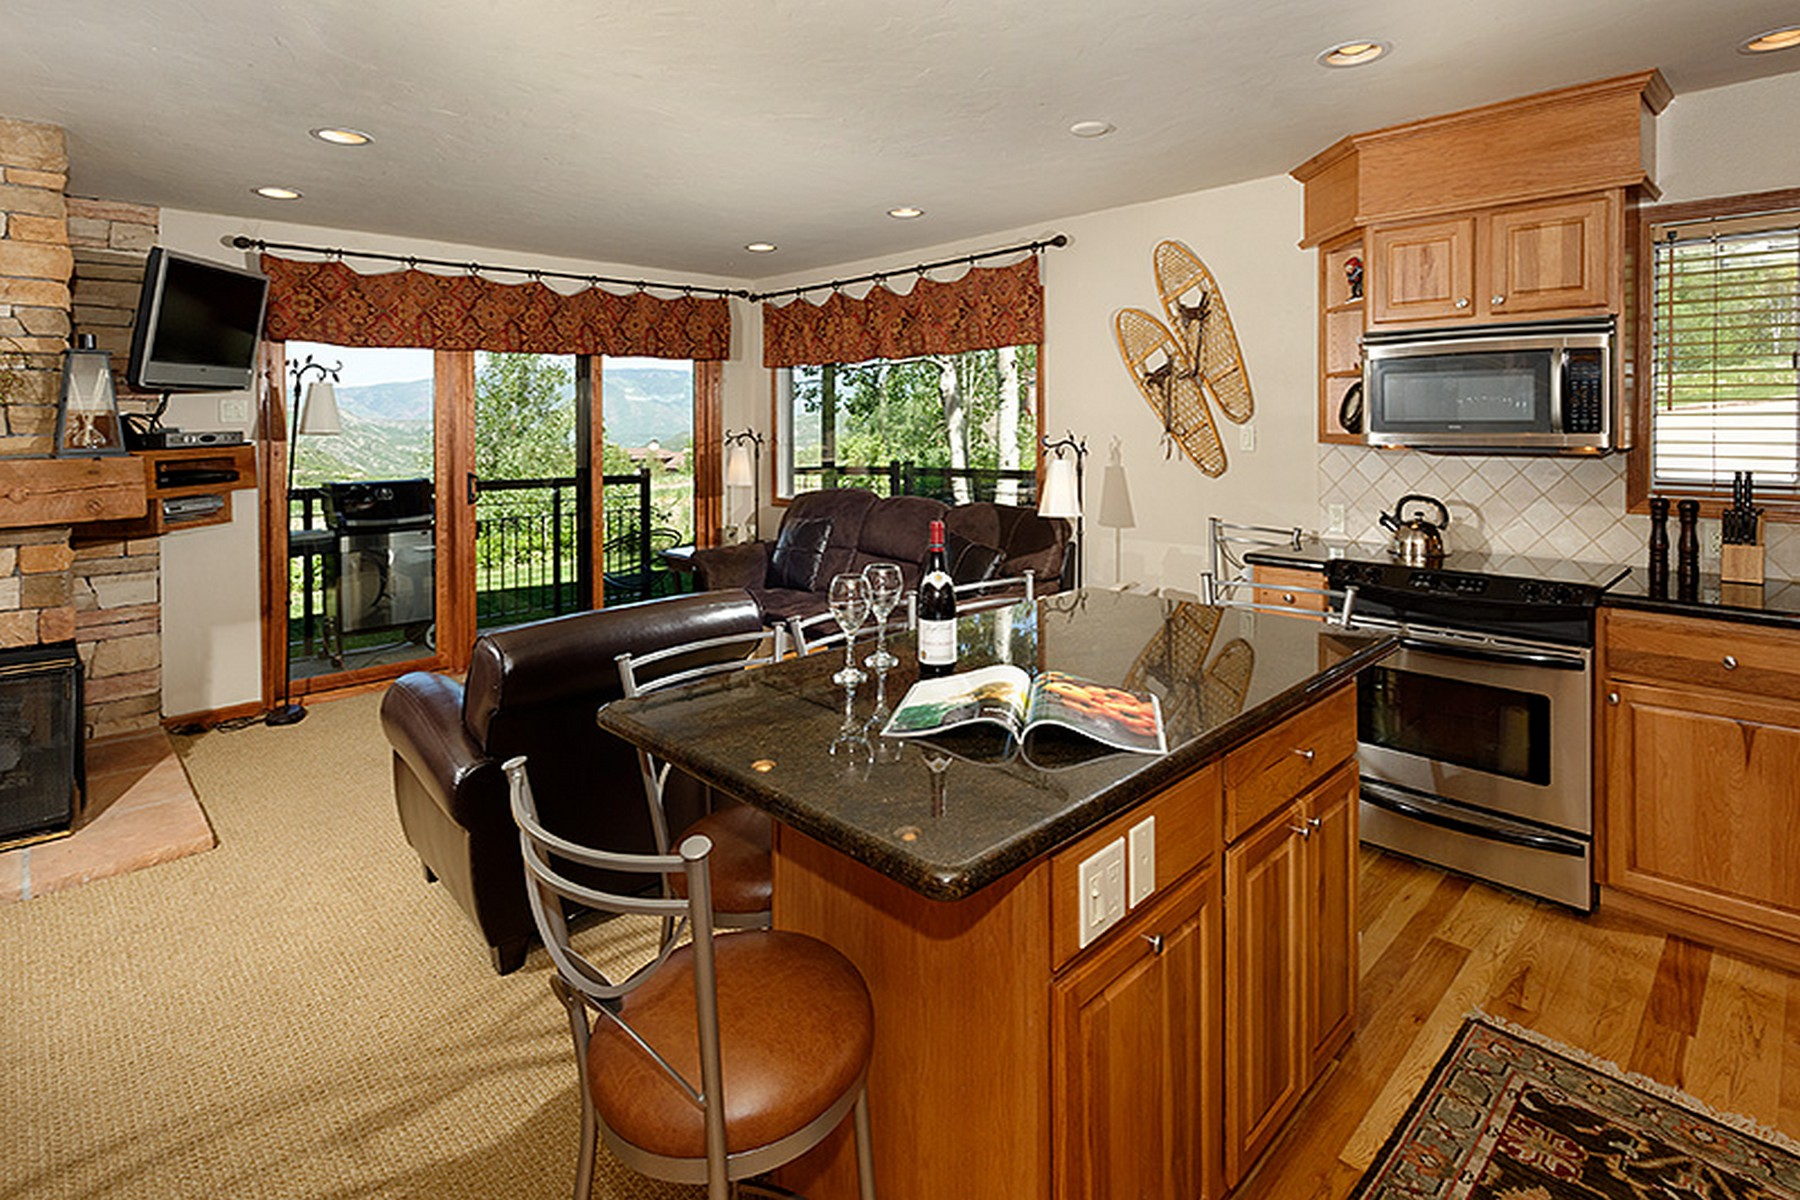 Condominium for Sale at Crestwood 400 Wood Rd Unit 1121 Snowmass Village, Colorado, 81615 United States